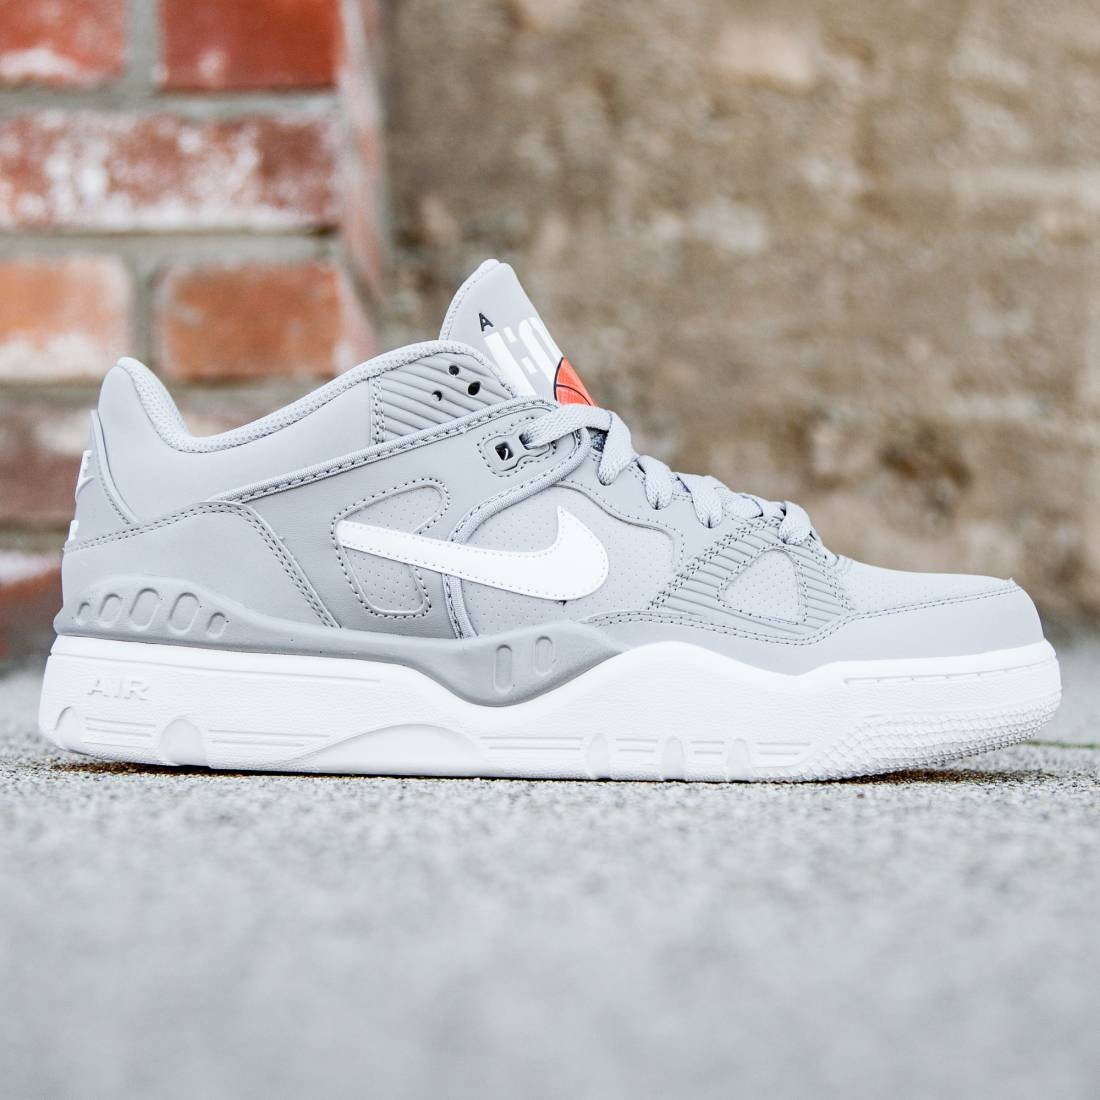 Air Force III Low gray wolf grey